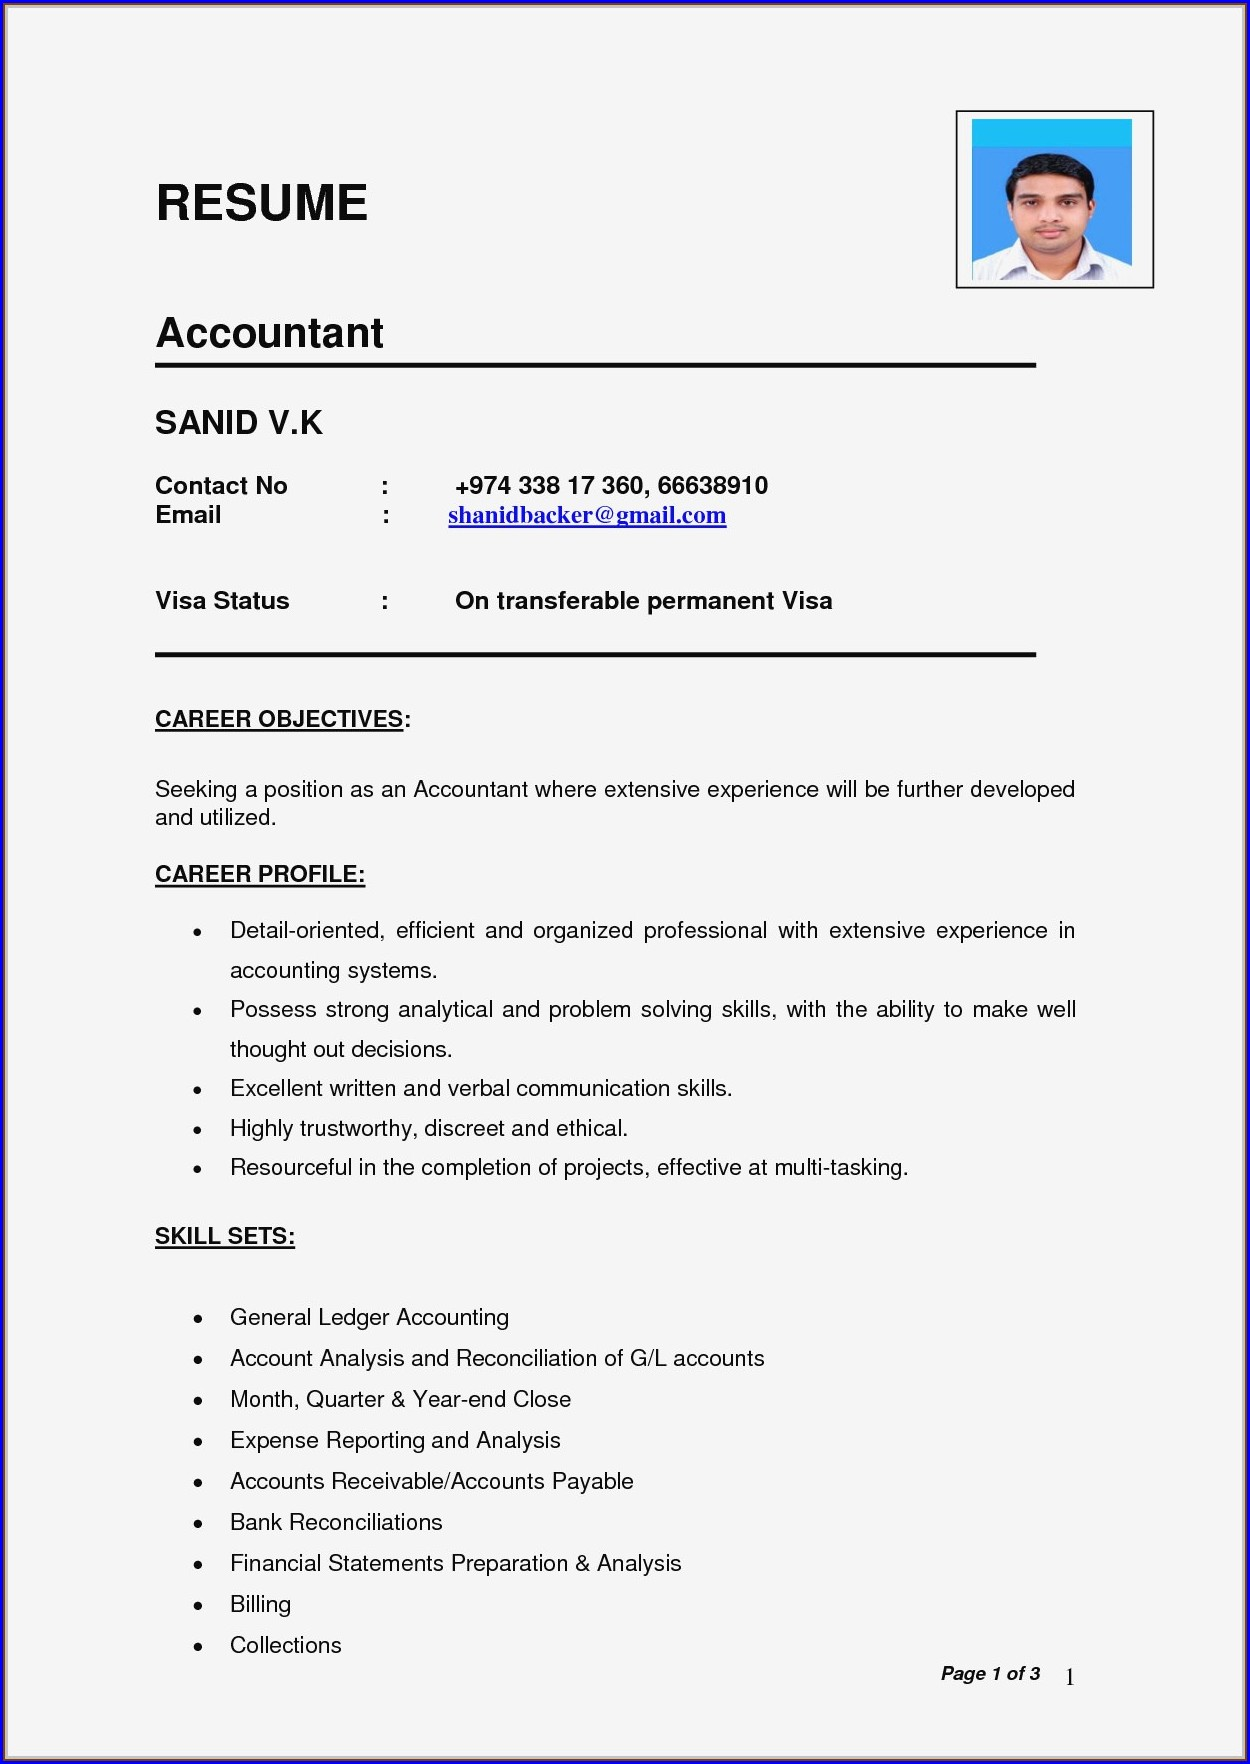 Professional Resume For Accountants